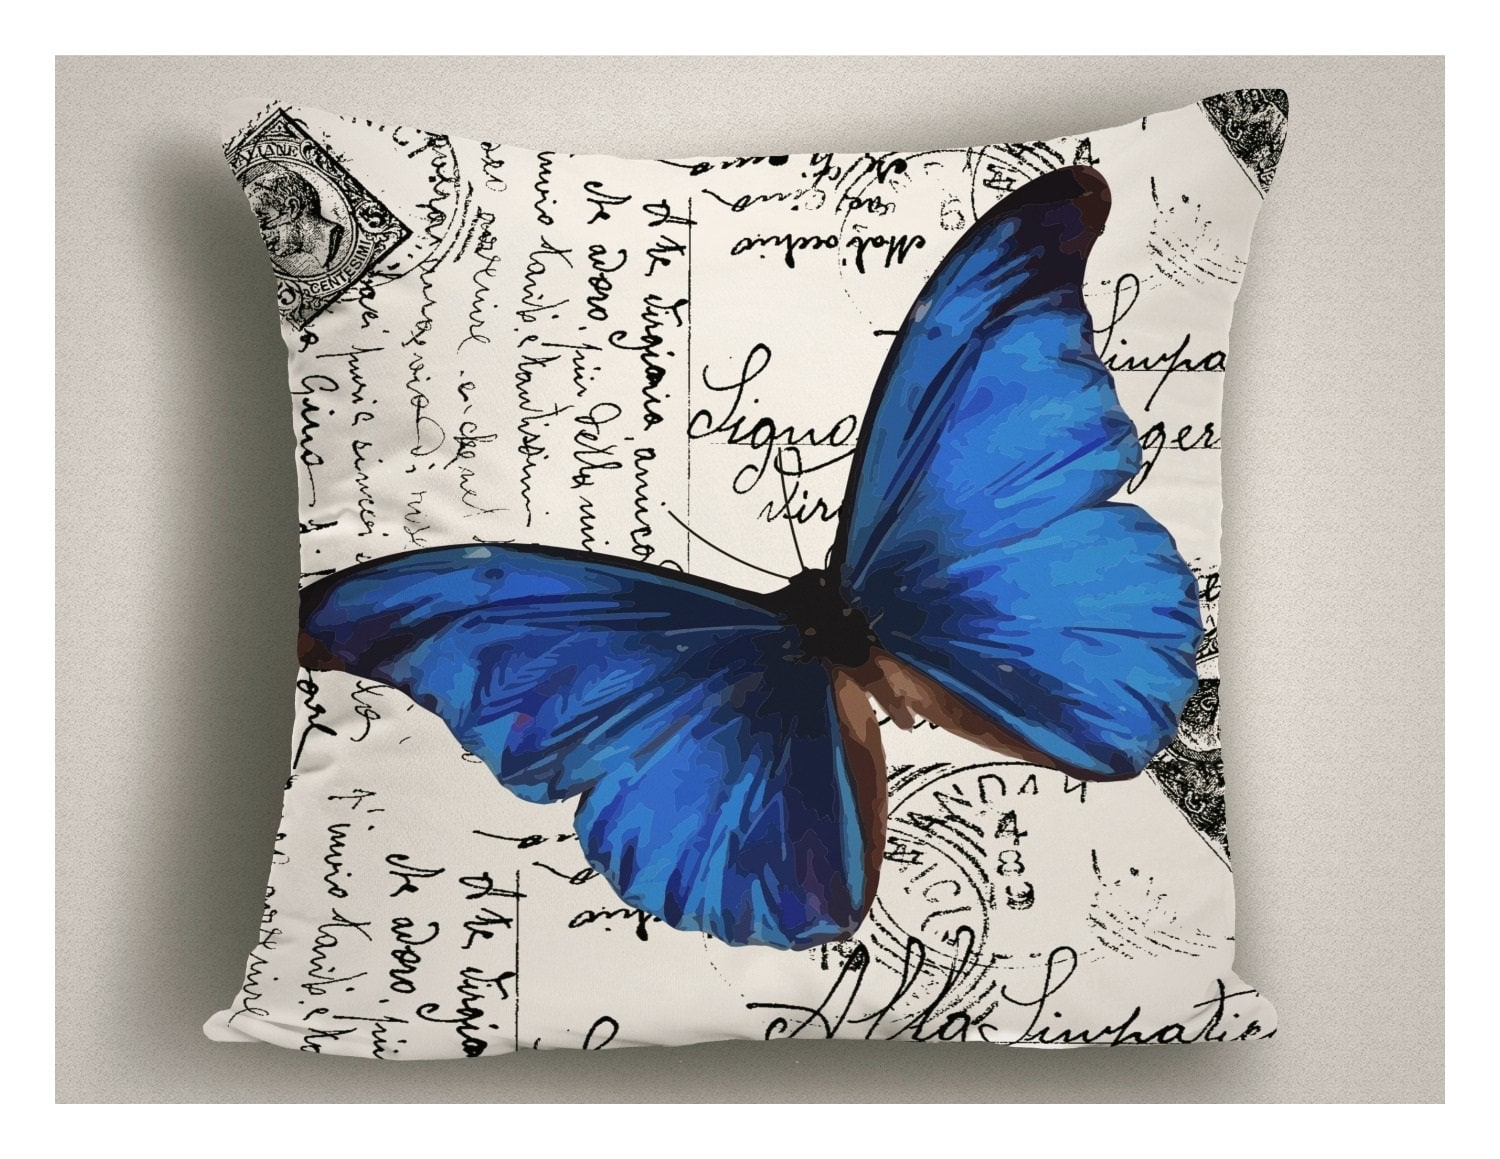 Unique Outdoor Pillow Script Writing Blue Butterfly, Patio Pillow Cover,  Outdoor Pillows With Sayings, Decorative Outdoor Pillow Cushion